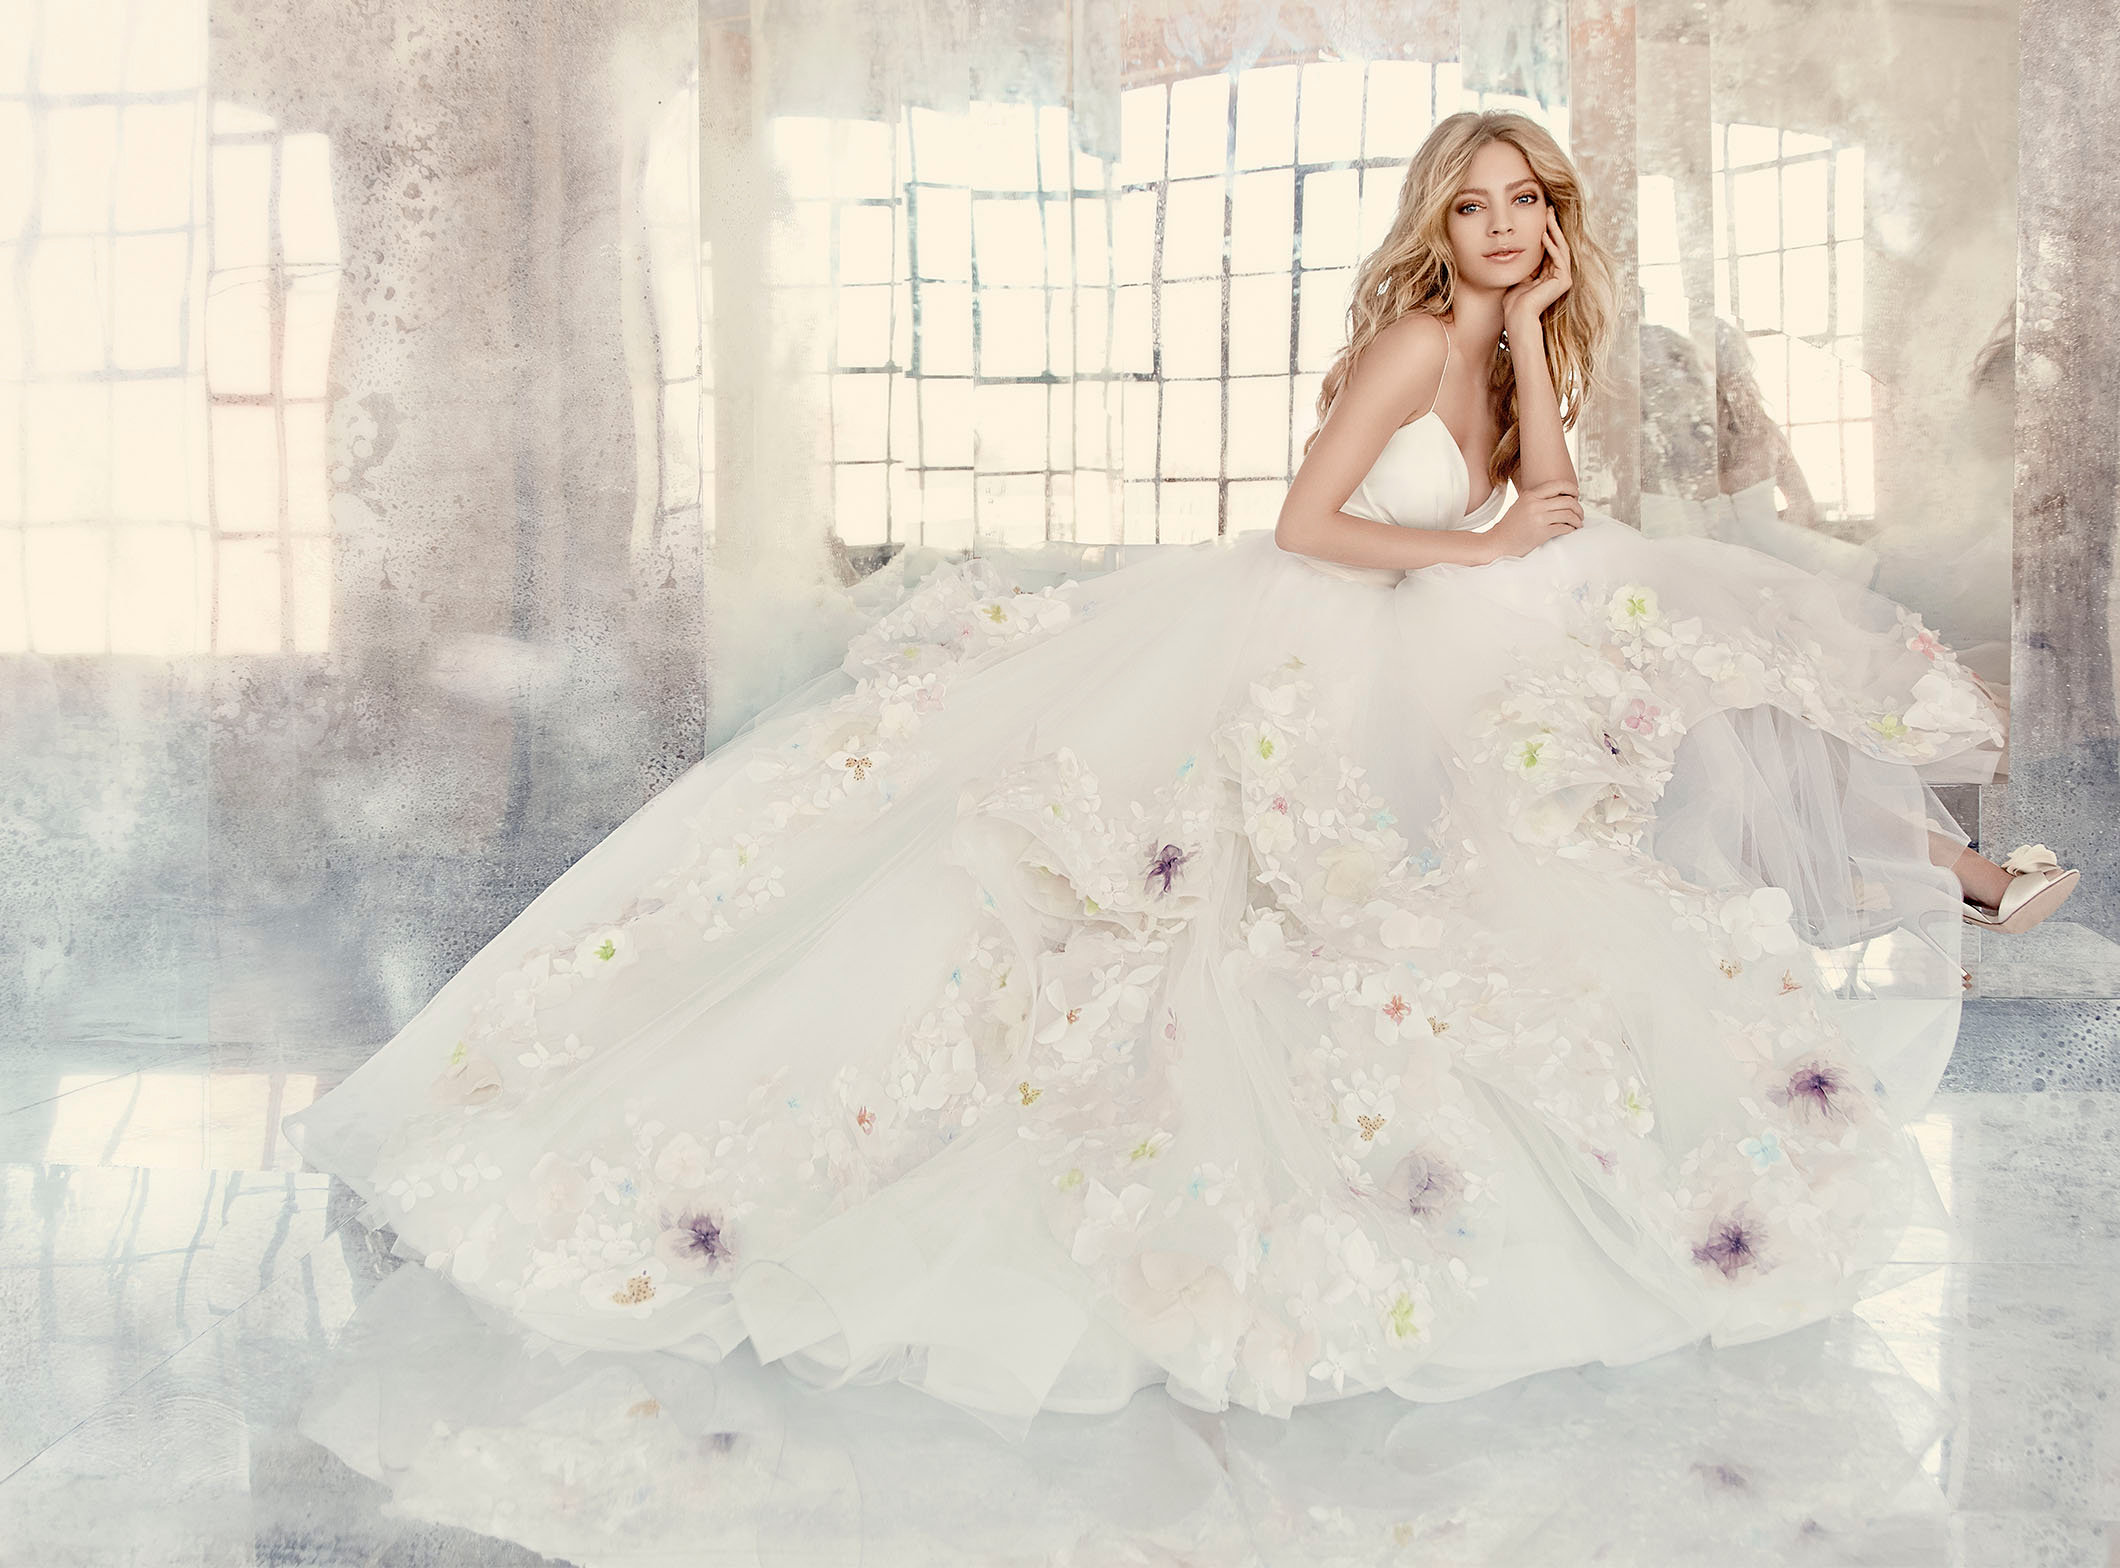 hayley-paige-bridal-tulle-ball-marzipan-floral-draped-taffeta-v-spaghetti-appliques-cascading-tiered-6601_x4.jpg